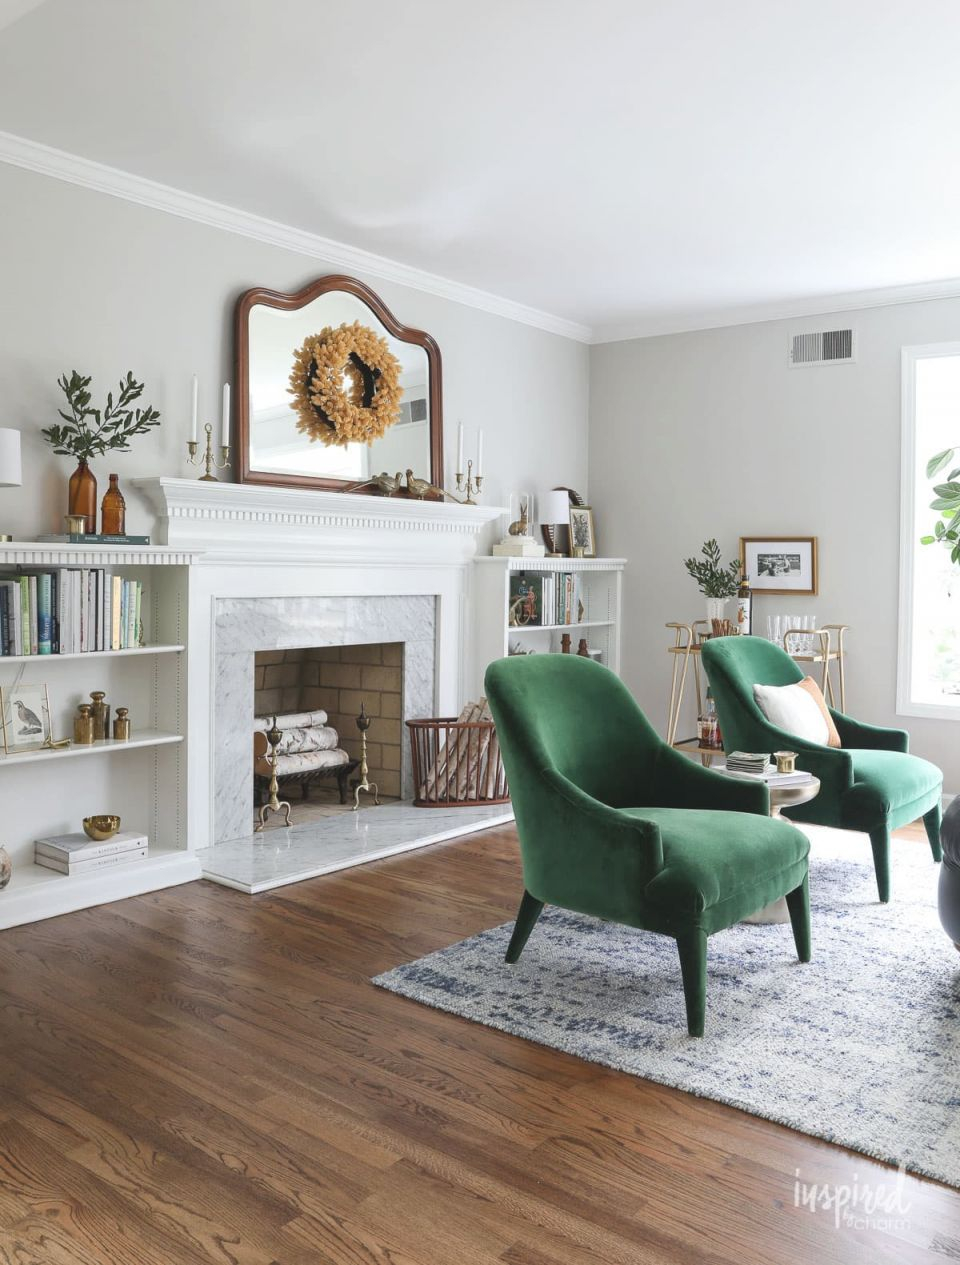 Living Room Autumn Decorations – Fall Decorating Ideas pertaining to 10+ Unique Gallery Hunting Decor For Living Room